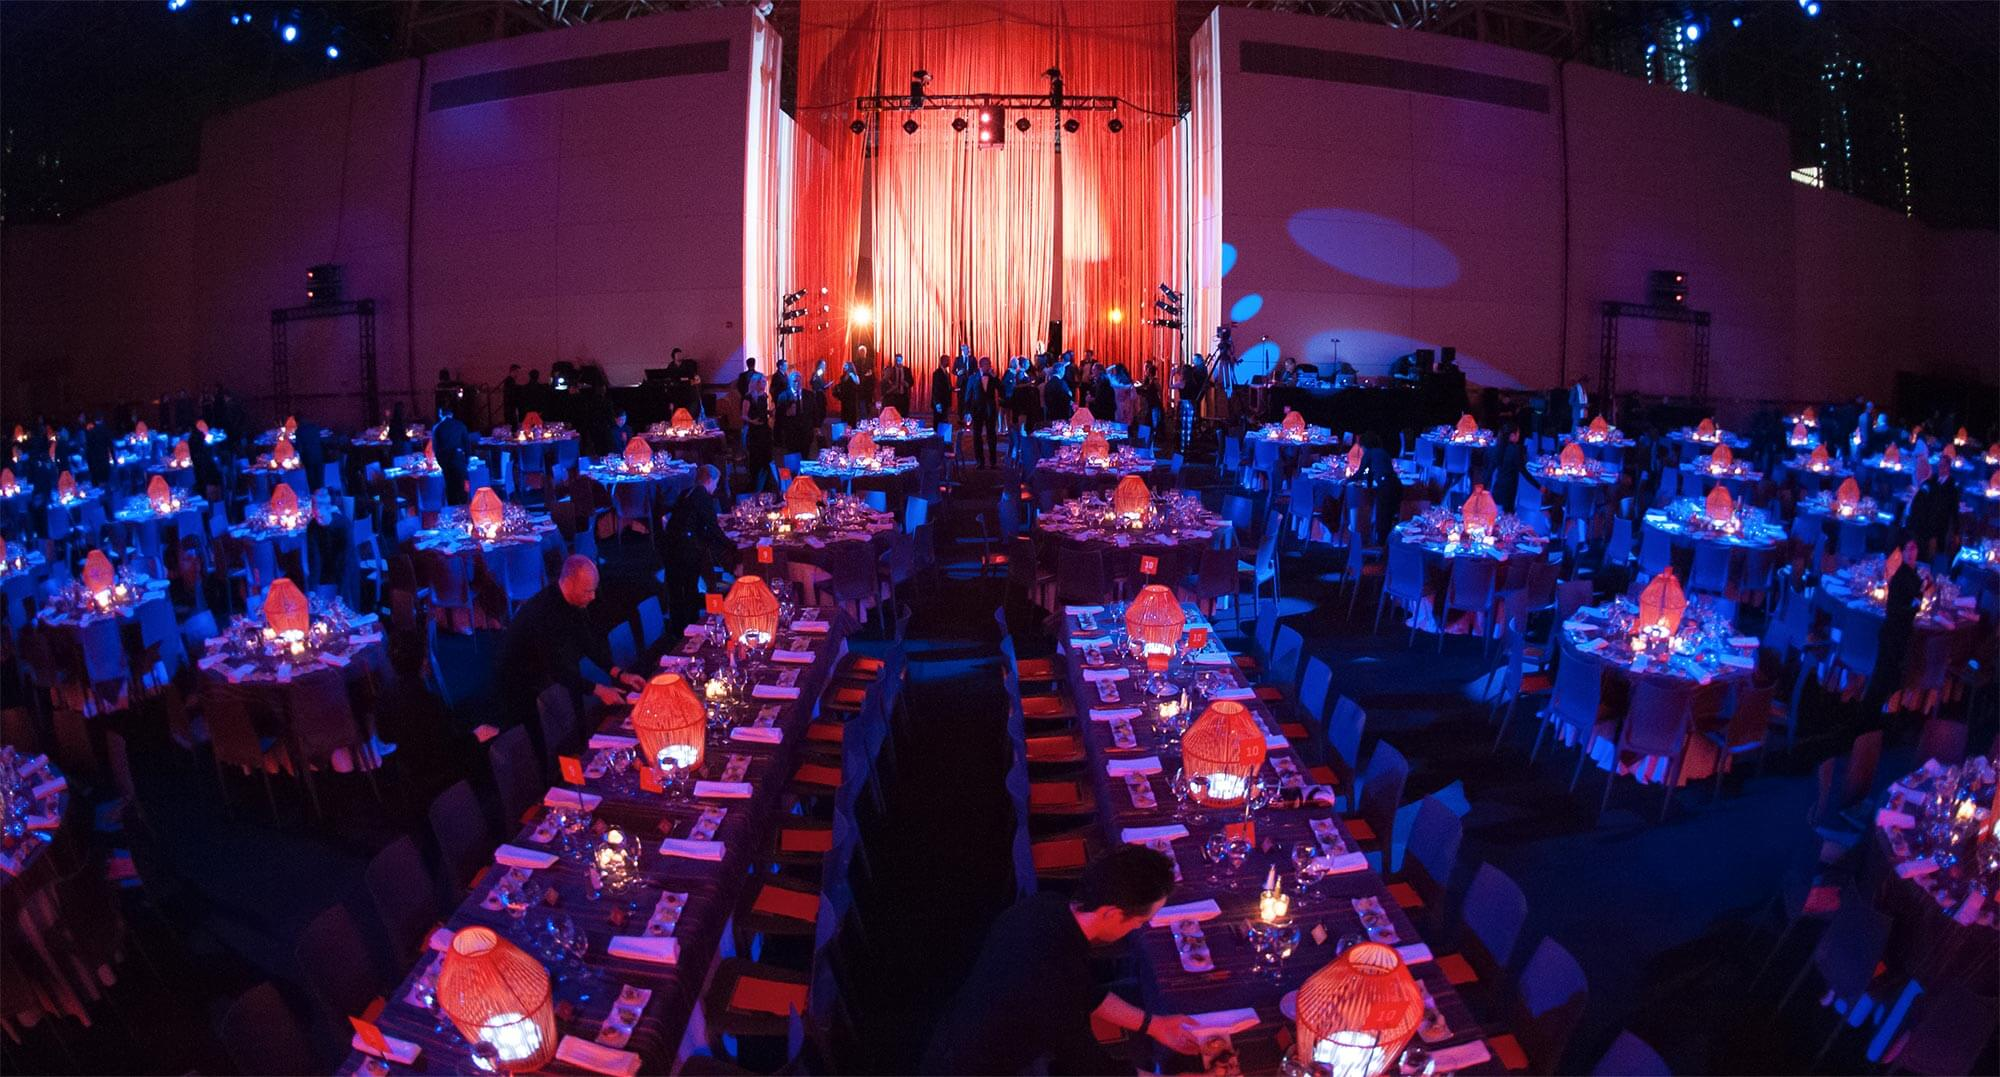 Panoramic view of Interior Design's Hall of Fame banquet hall.